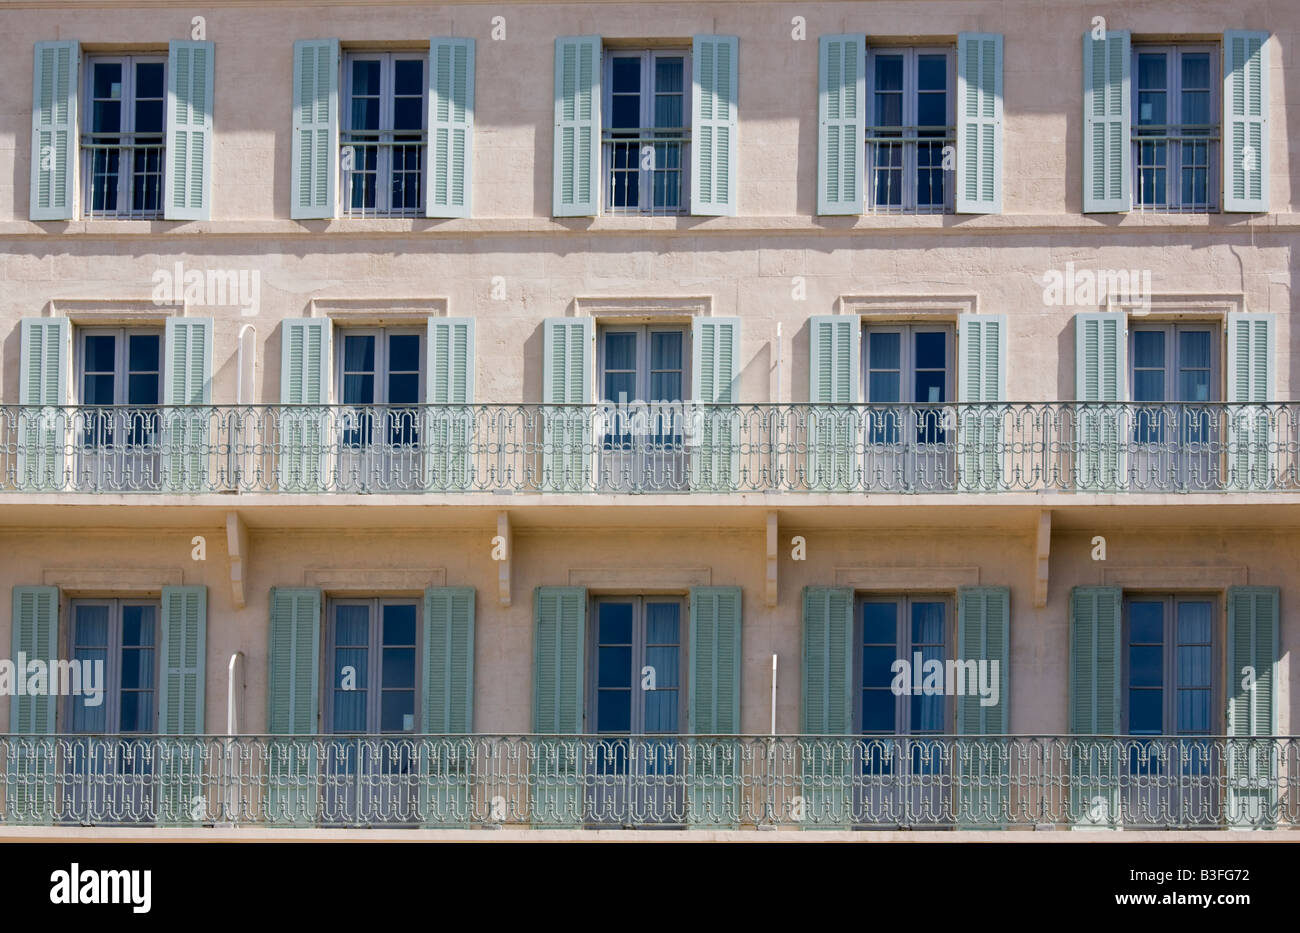 shuttered windows and balconies, Avignon, Provence, France - Stock Image